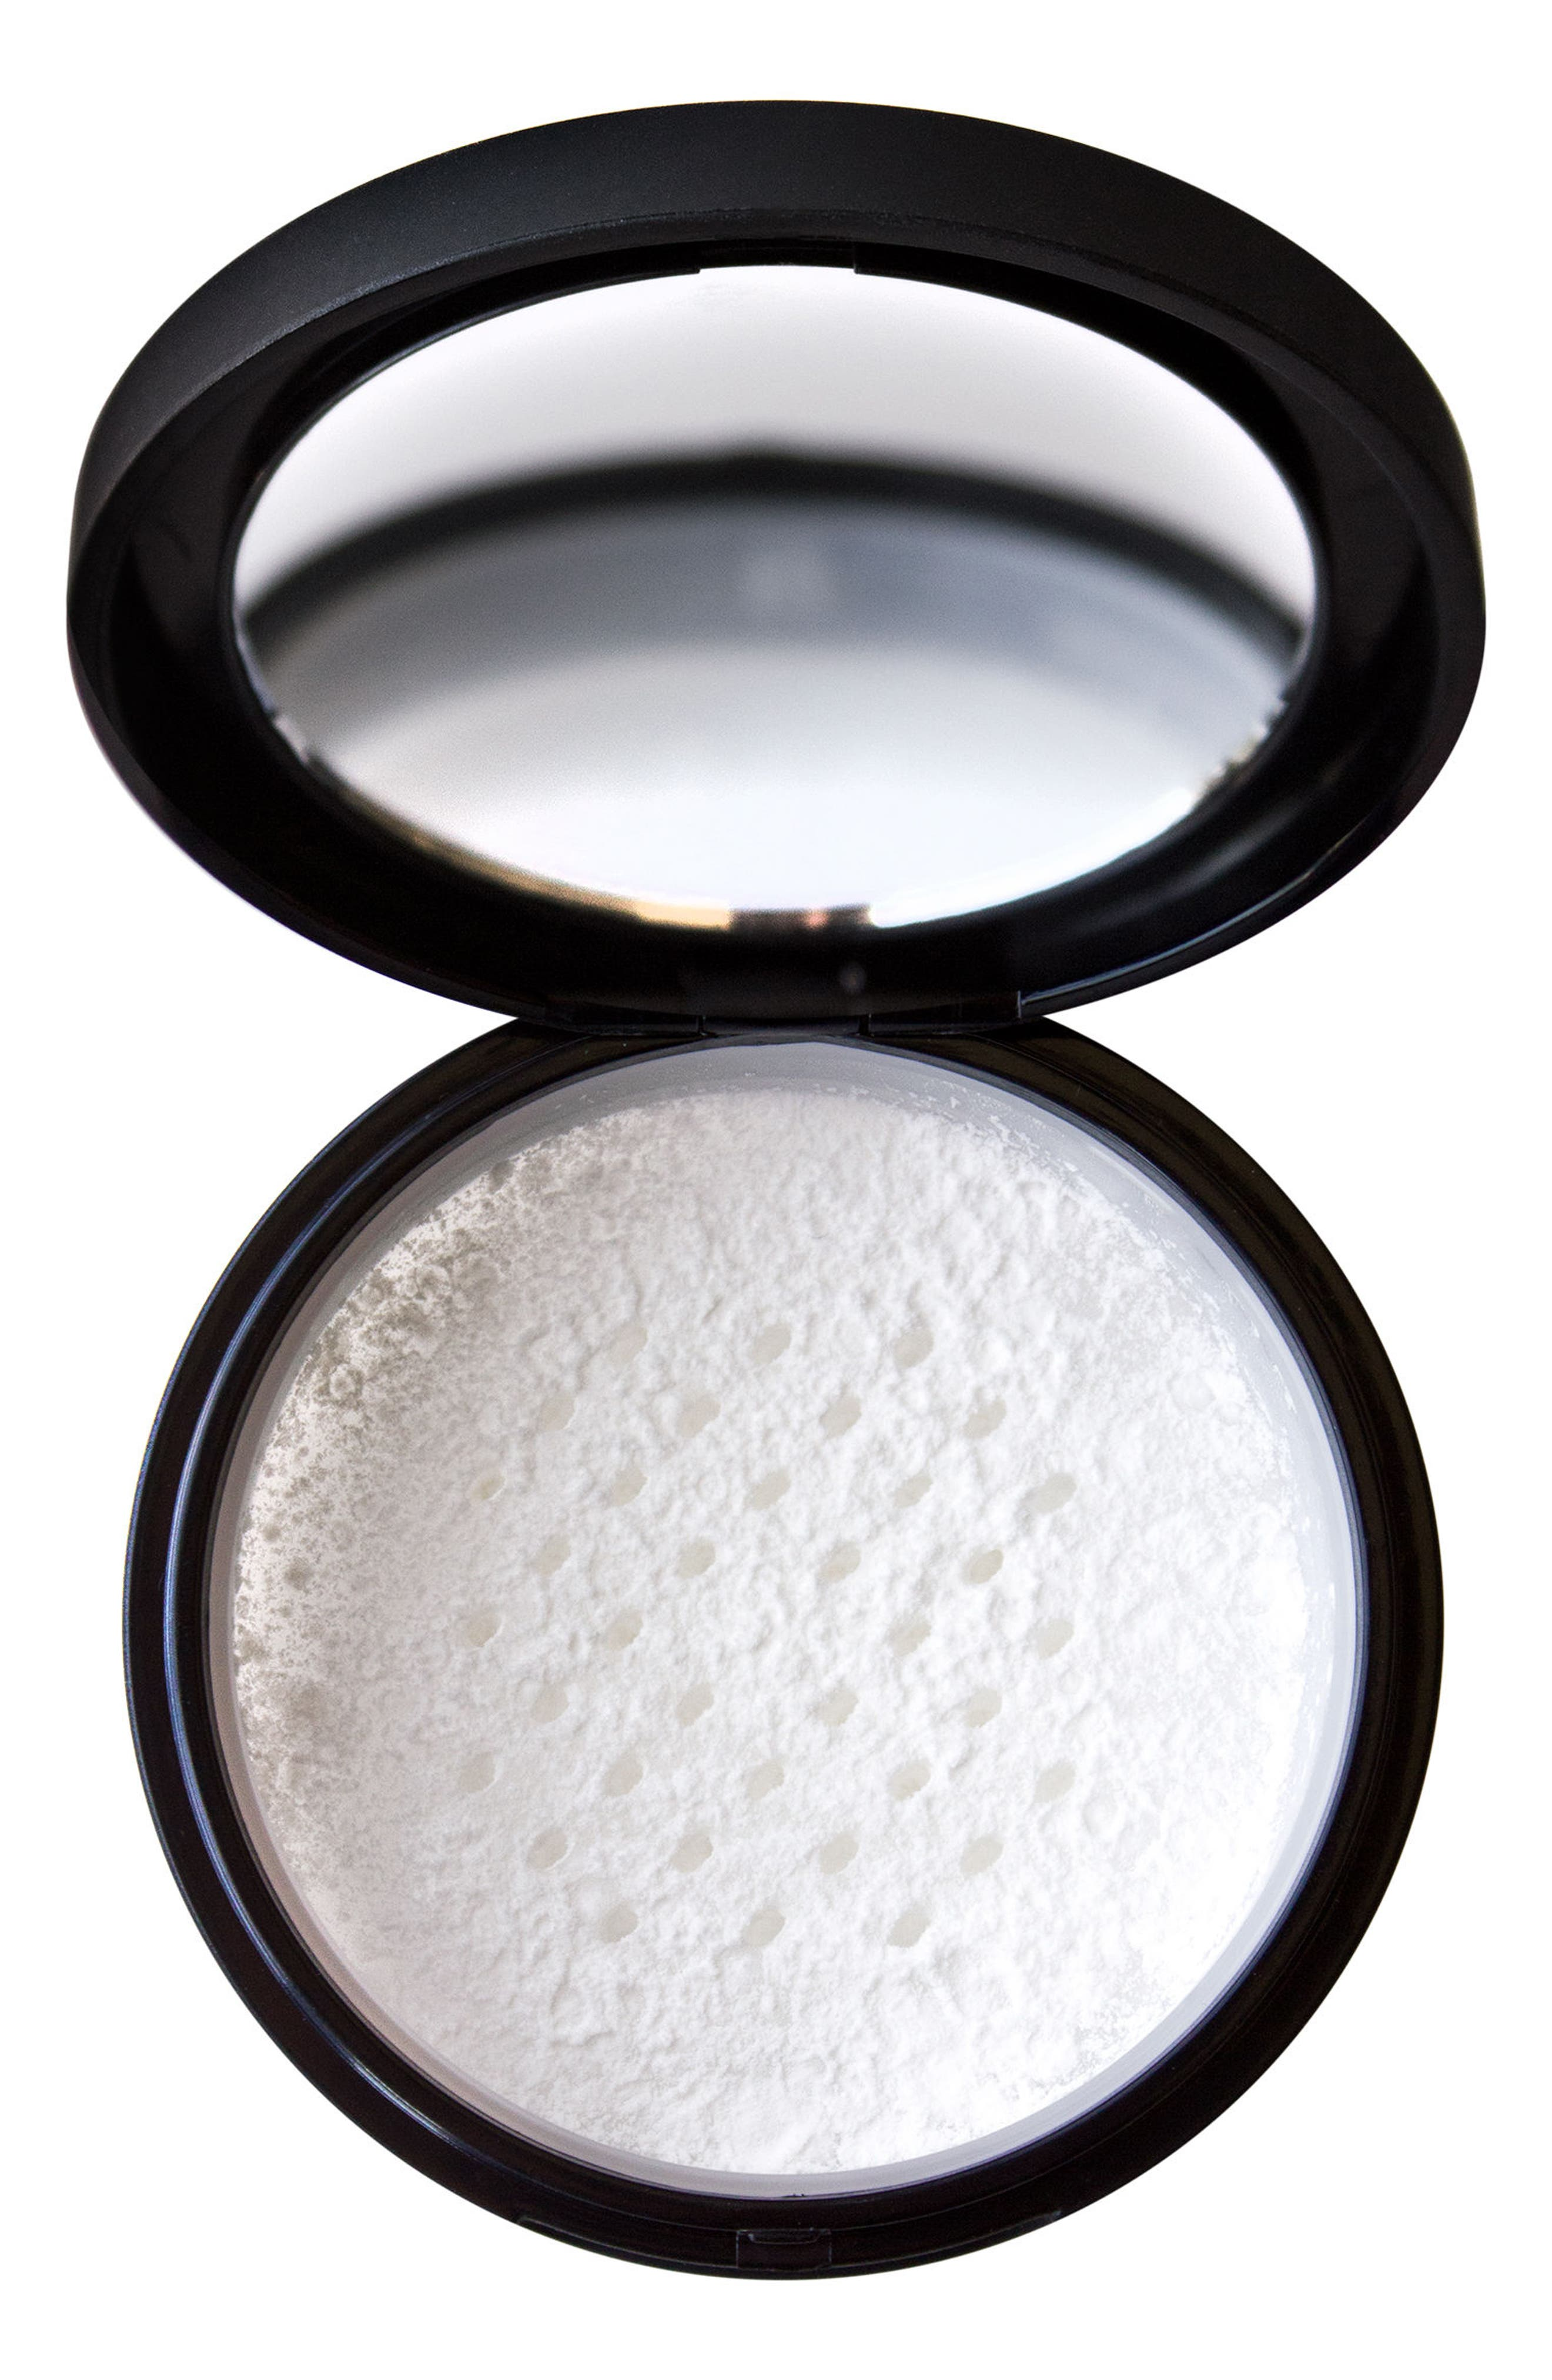 PRO Blurring Translucent Loose Powder,                         Main,                         color, 000